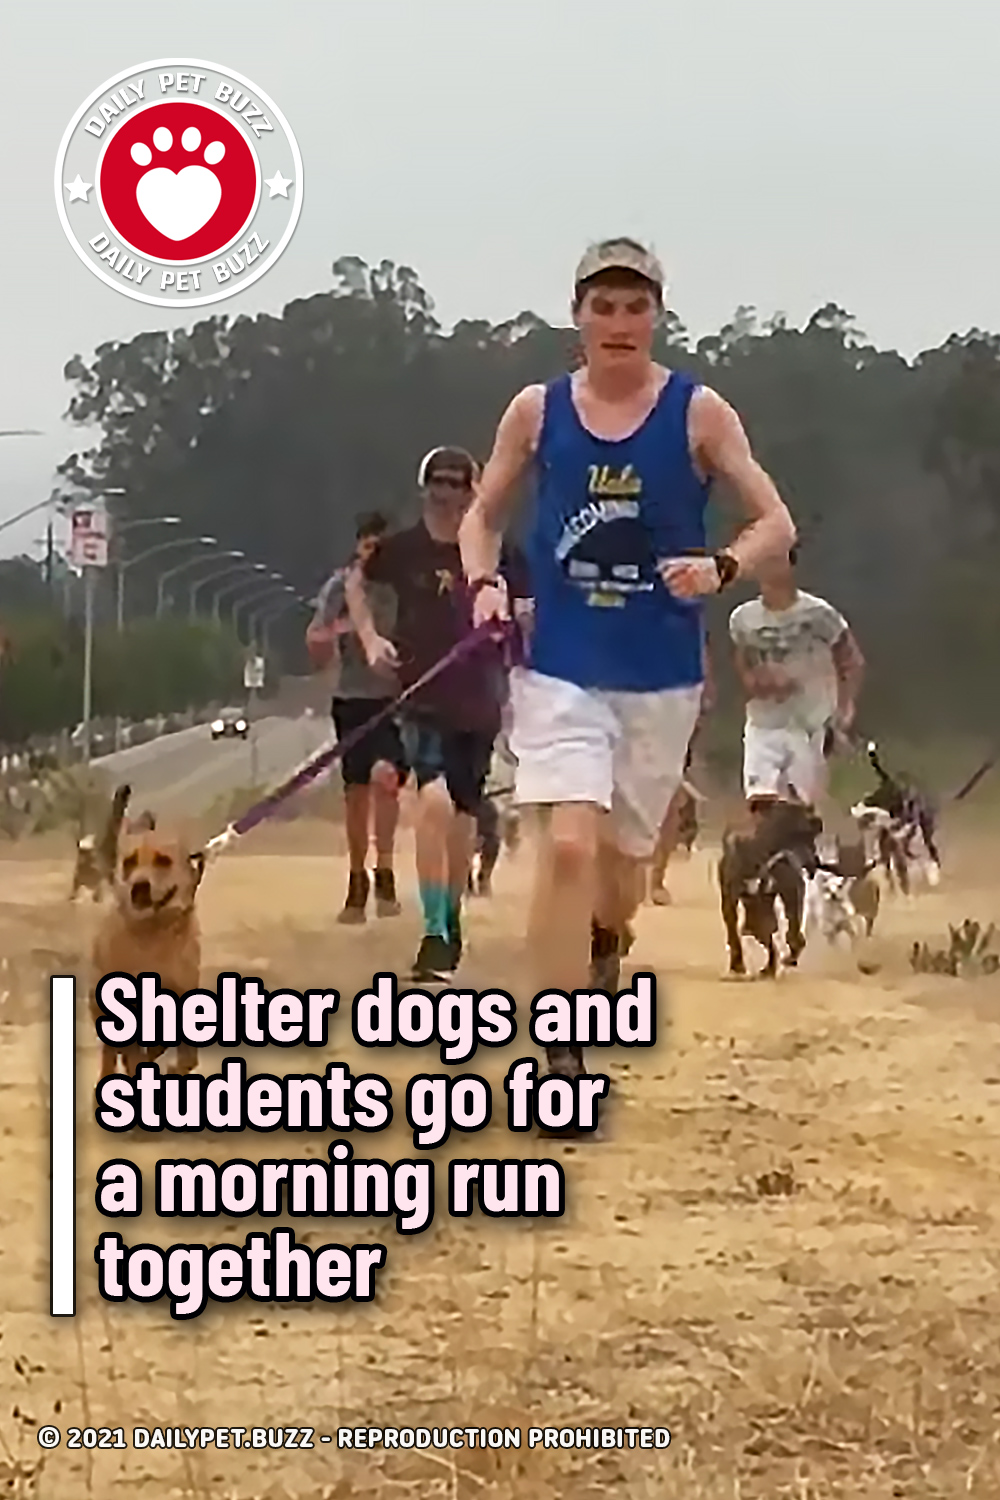 Shelter dogs and students go for a morning run together